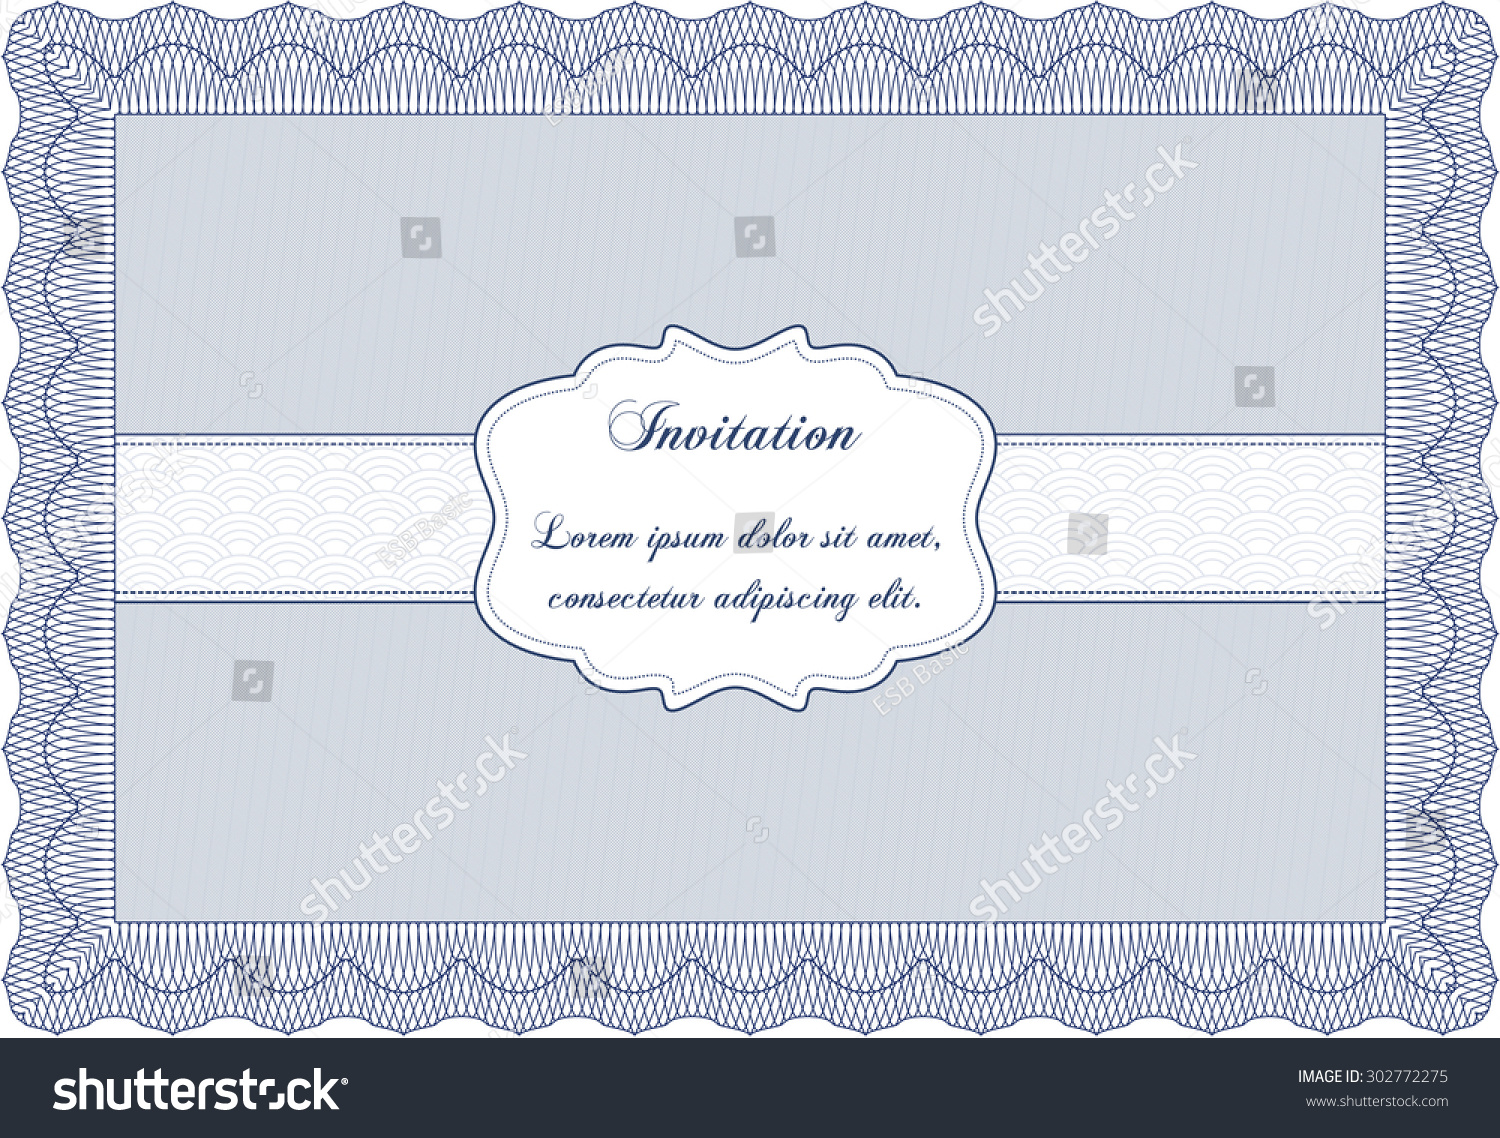 Formal invitation template background border frameelegant stock formal invitation template with background border frameelegant design stopboris Gallery